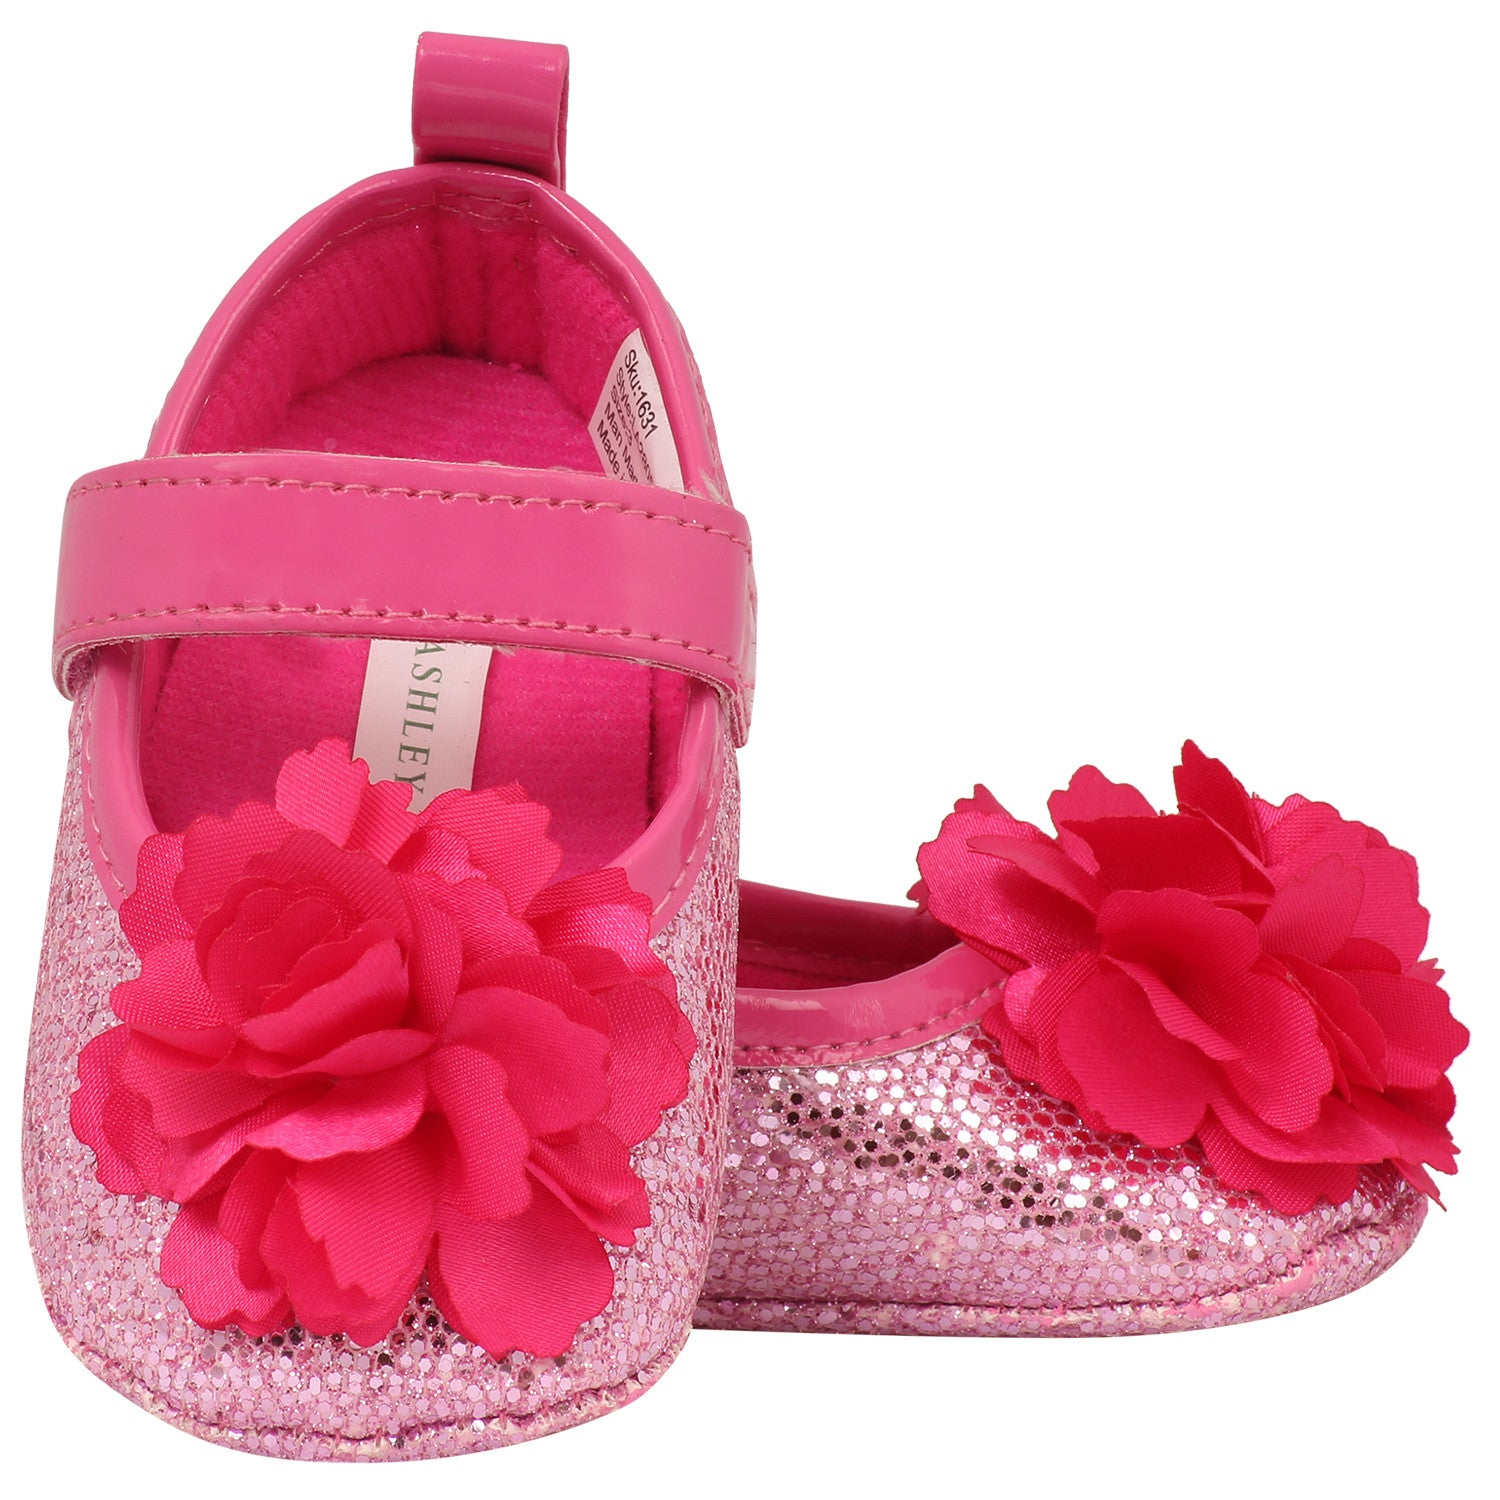 prewalker shoes baby shoes online baby shoes sale india – Pikaboo